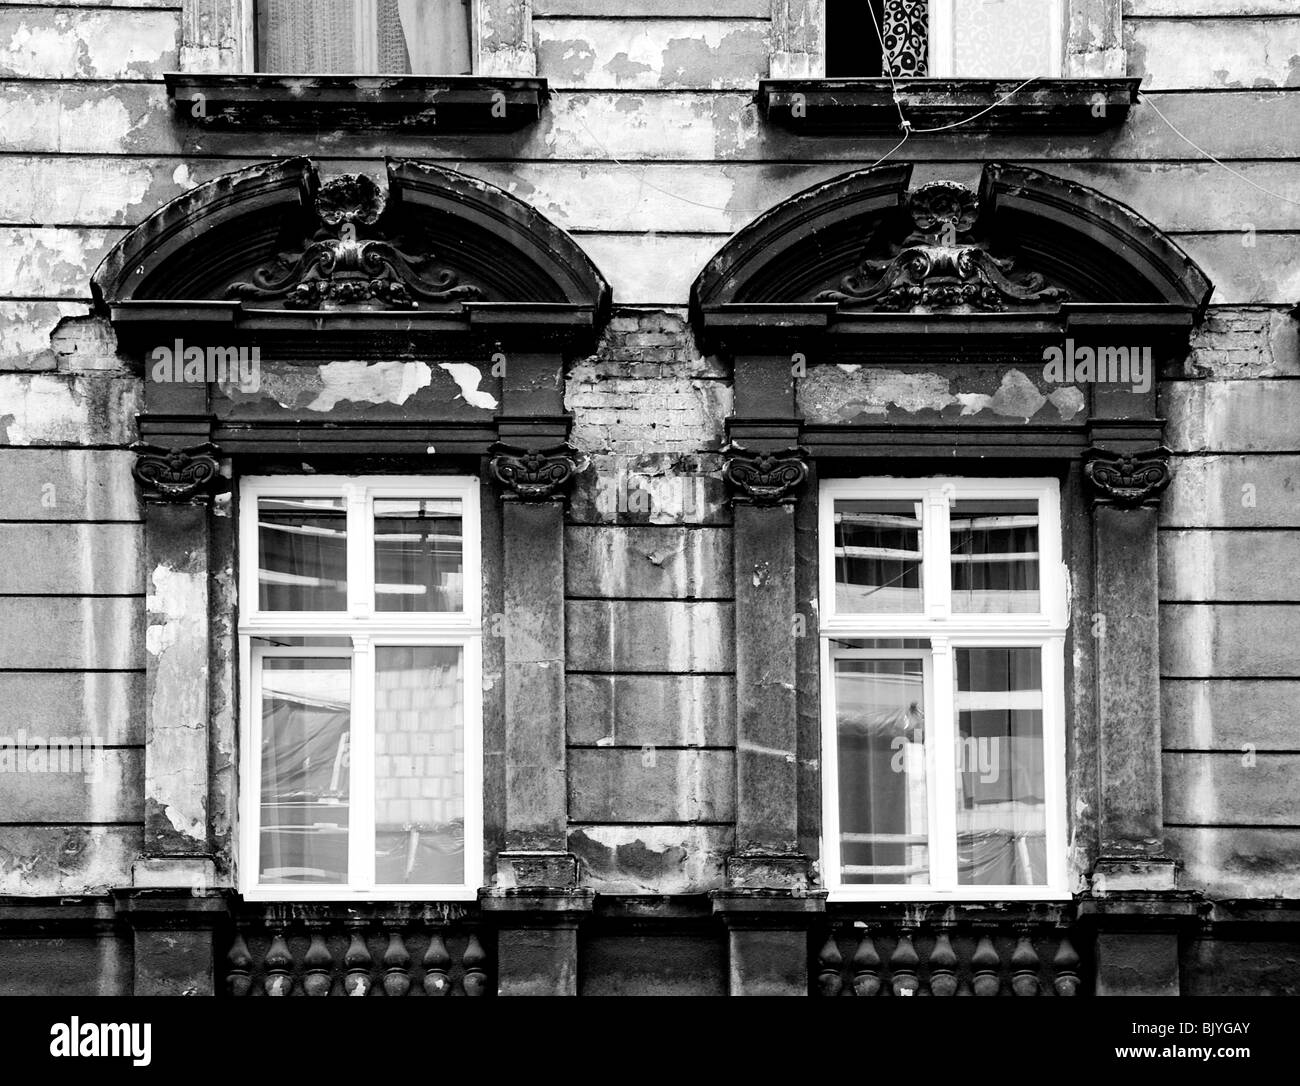 Run-down looking building, Krakow, Poland, Europe - Stock Image